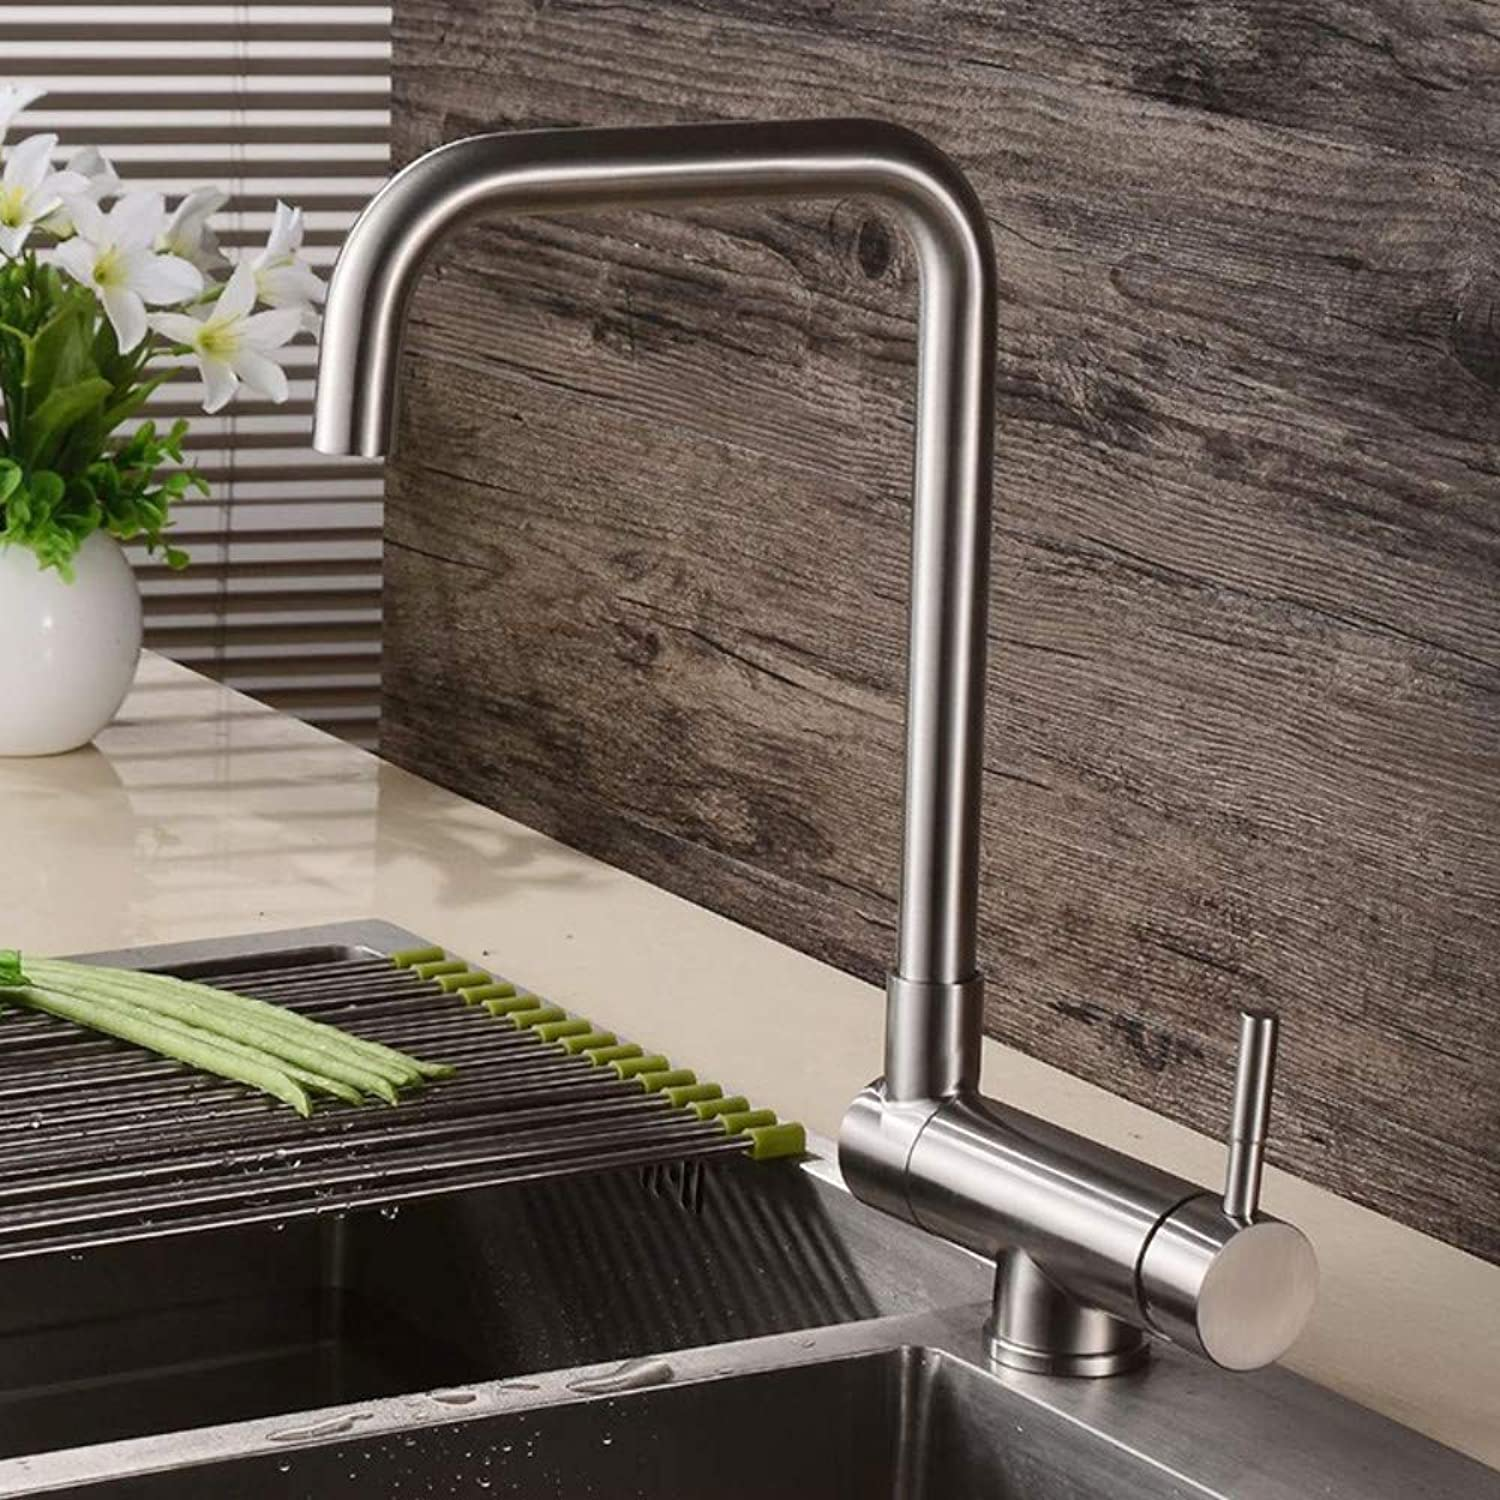 Stainless Steel Sink Faucet Kitchen redating Sink Hot and Cold Water Faucet